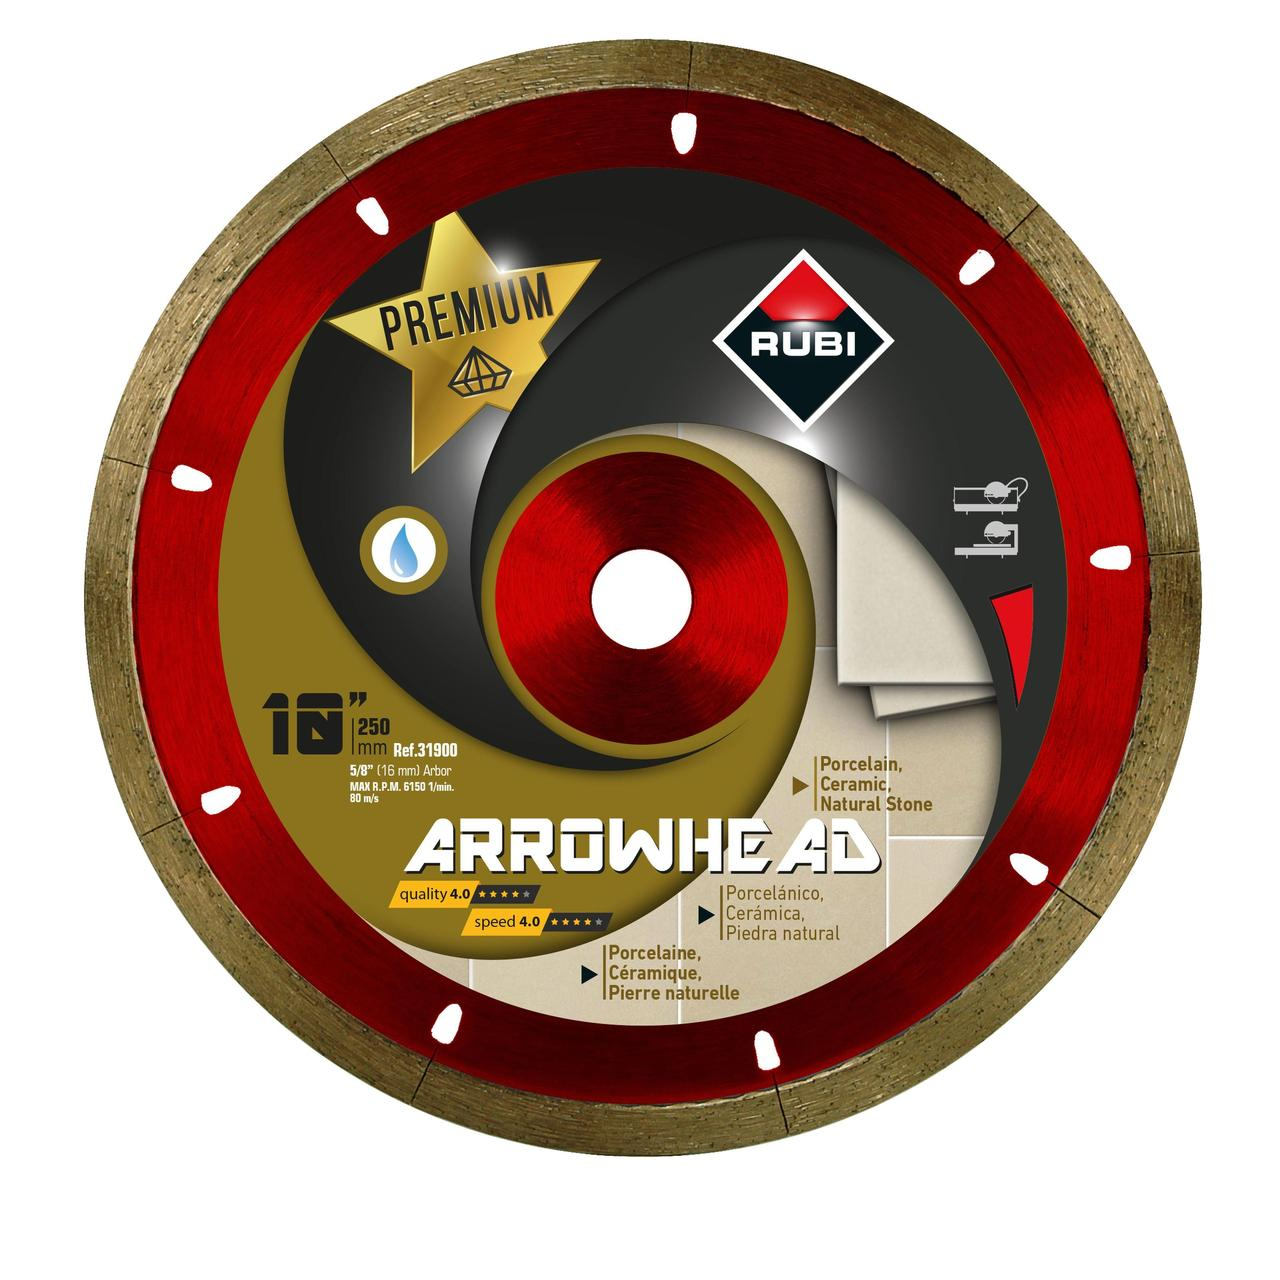 ARROWHEAD PREMIUM Diamond blade